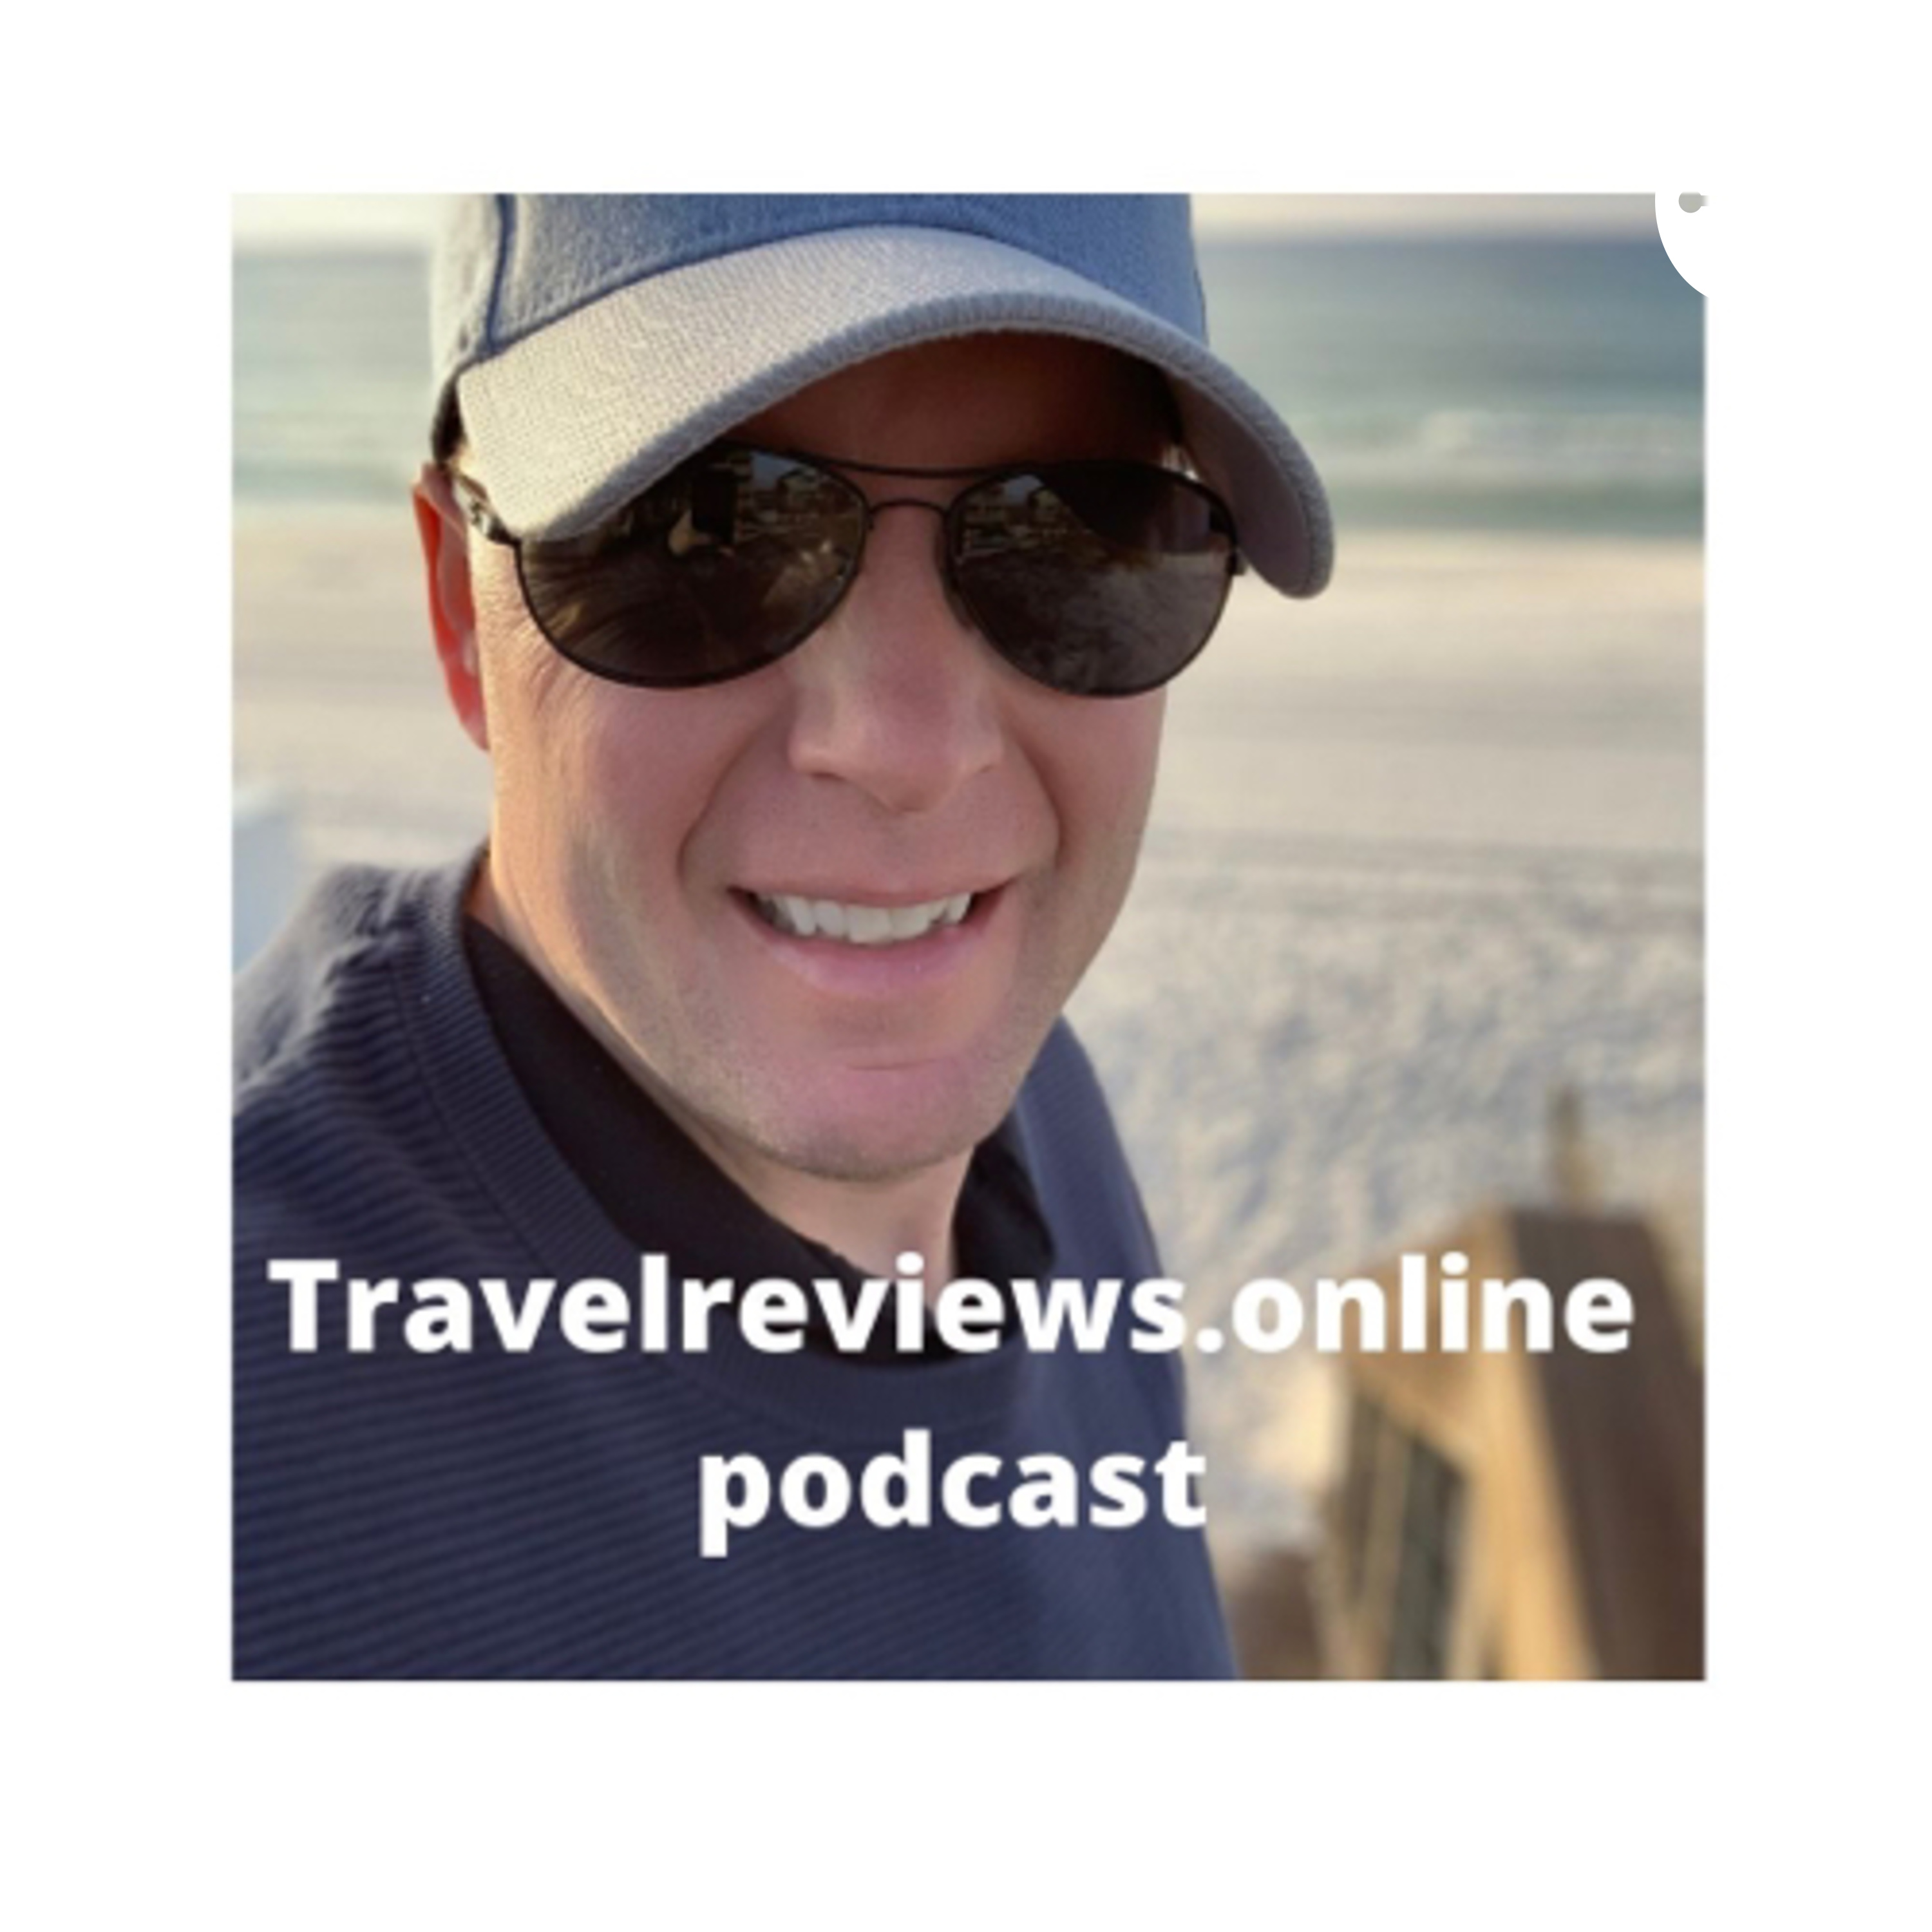 TravelReviews.online Pod